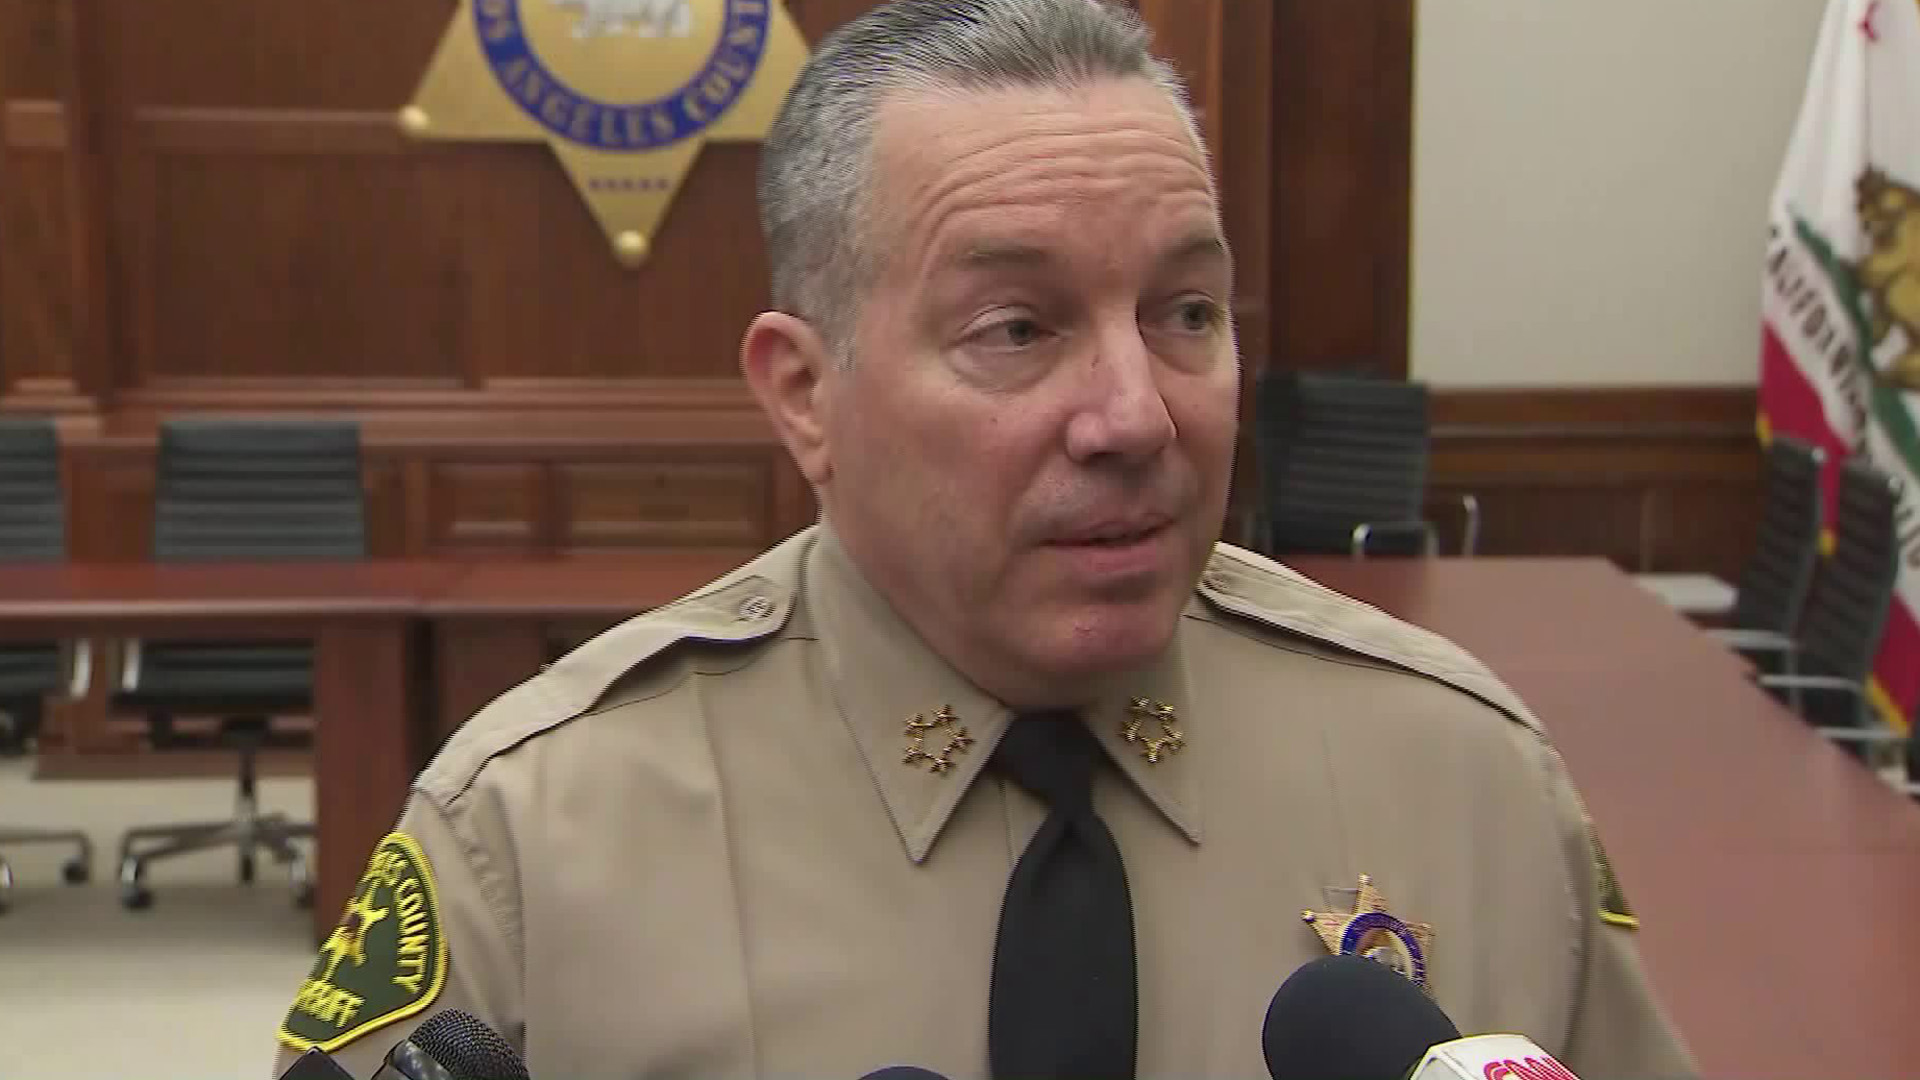 Los Angeles County Sheriff Alex Villanueva speaks to reporters on March 3, 2020. (KTLA)